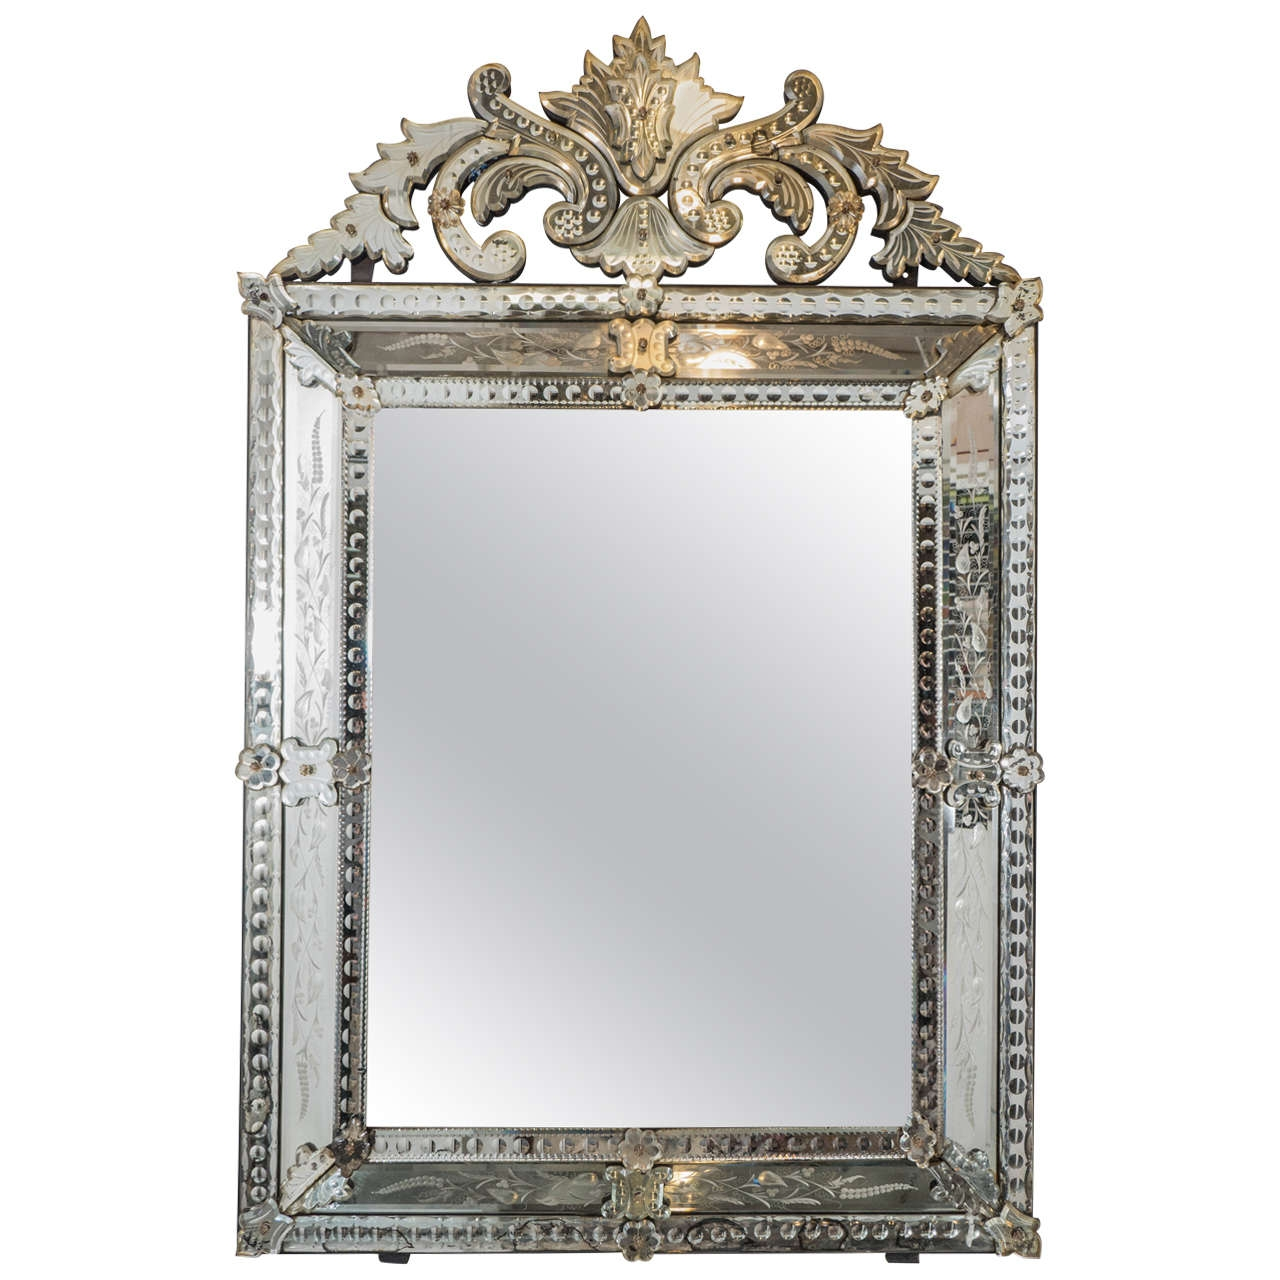 Delightful Design Antique Wall Mirror Vibrant Ideas Antique For Old Fashioned Wall Mirrors (Image 7 of 15)